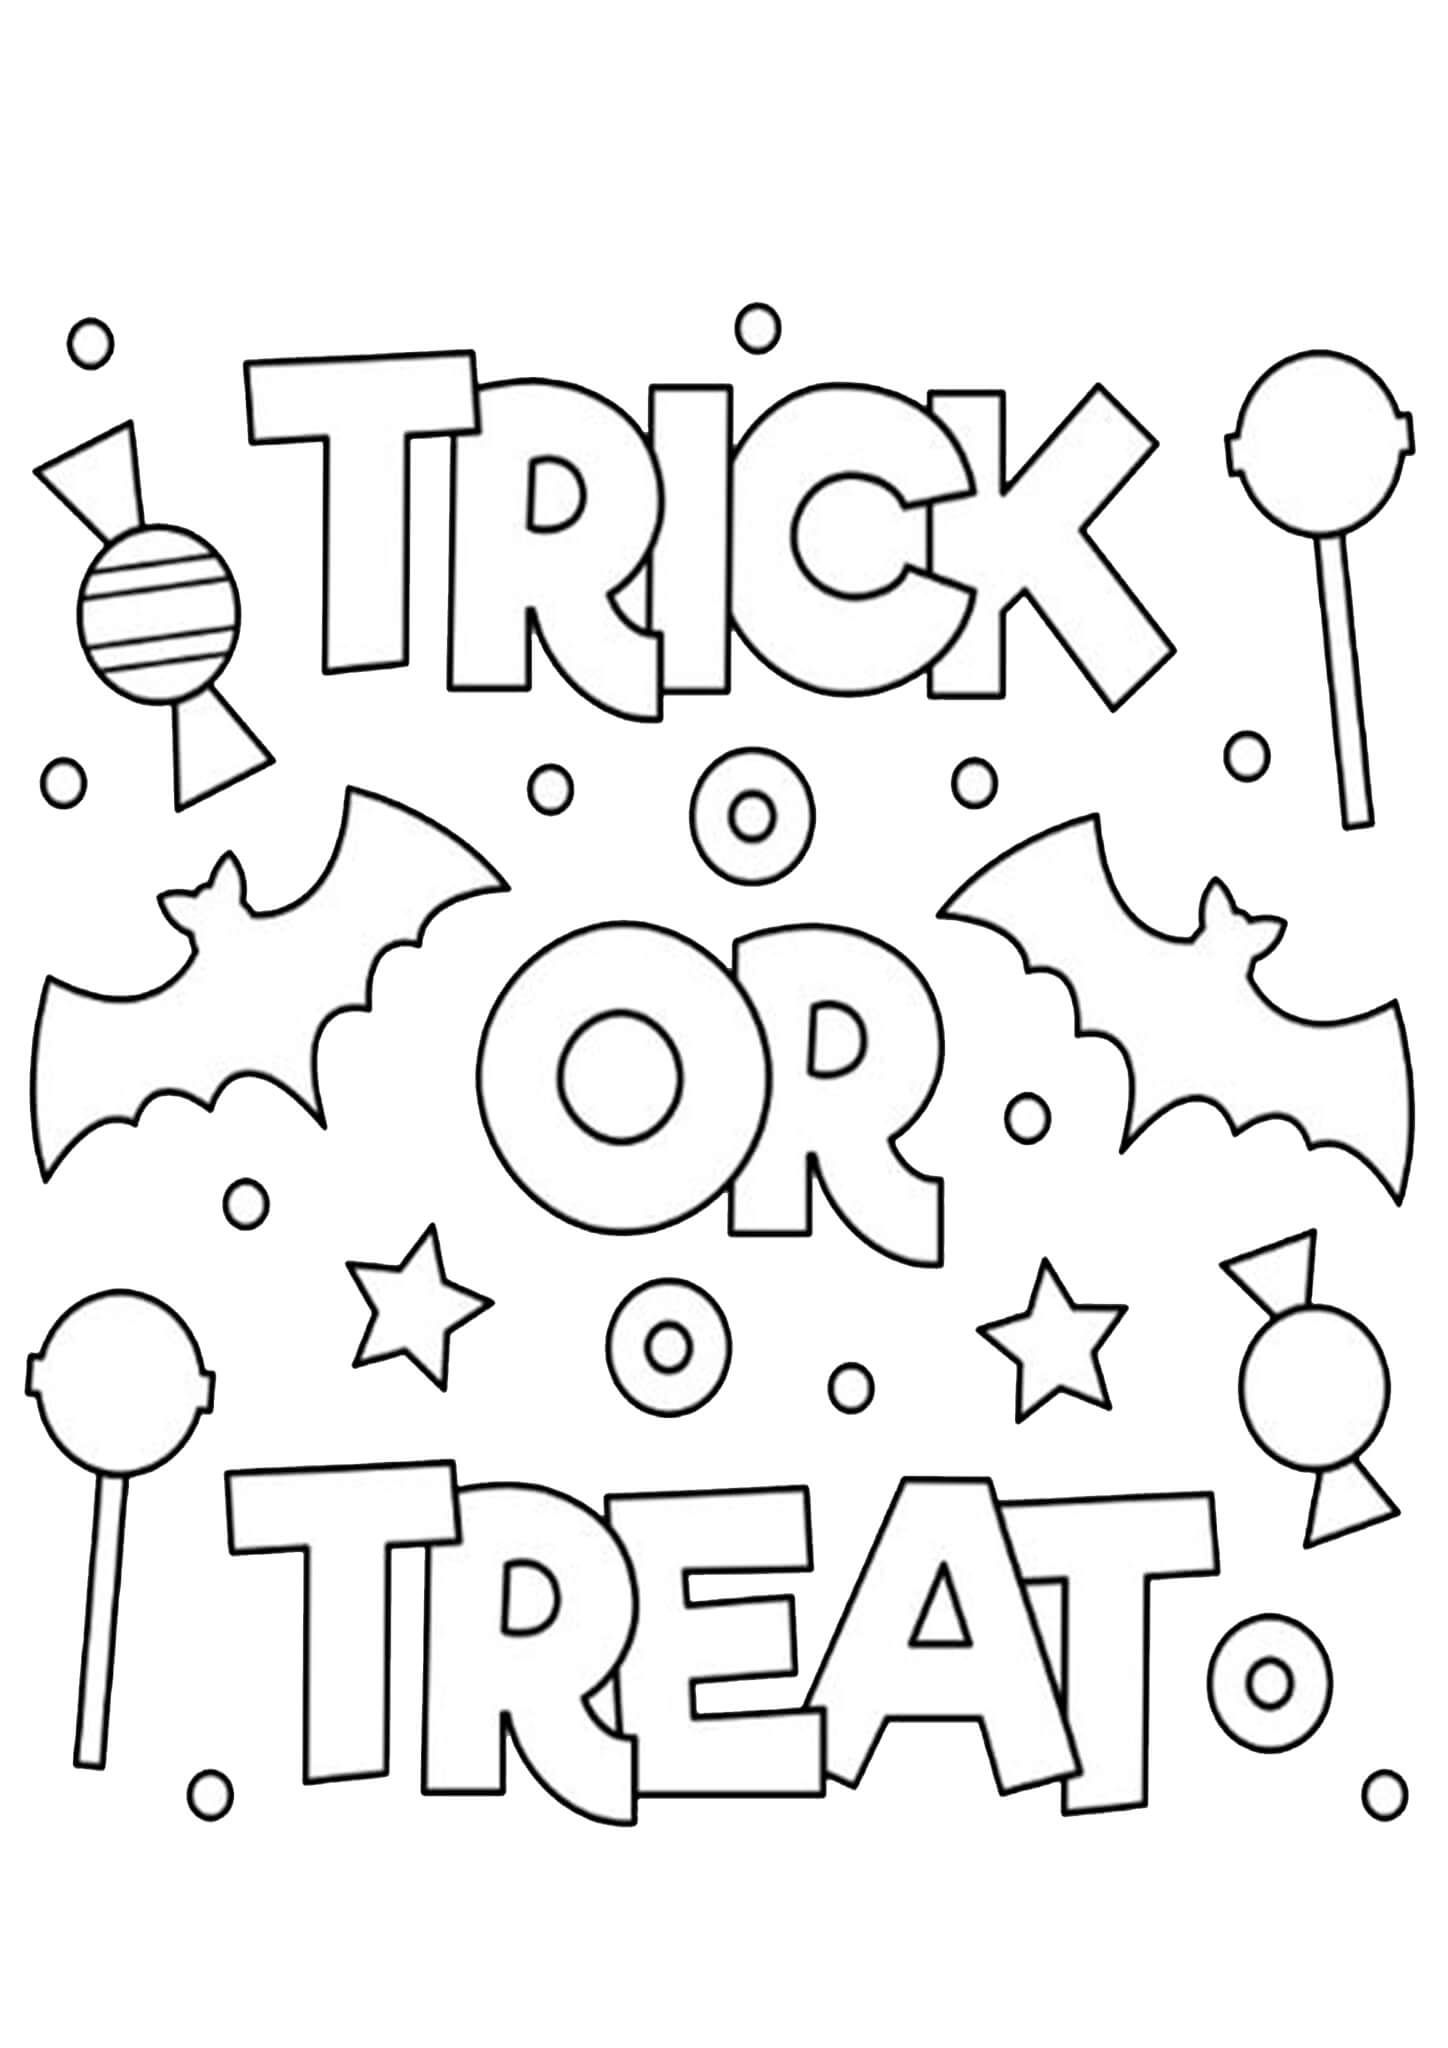 Free Easy To Print Halloween Coloring Pages Halloween Coloring Pages Halloween Coloring Free Halloween Coloring Pages [ 2048 x 1448 Pixel ]